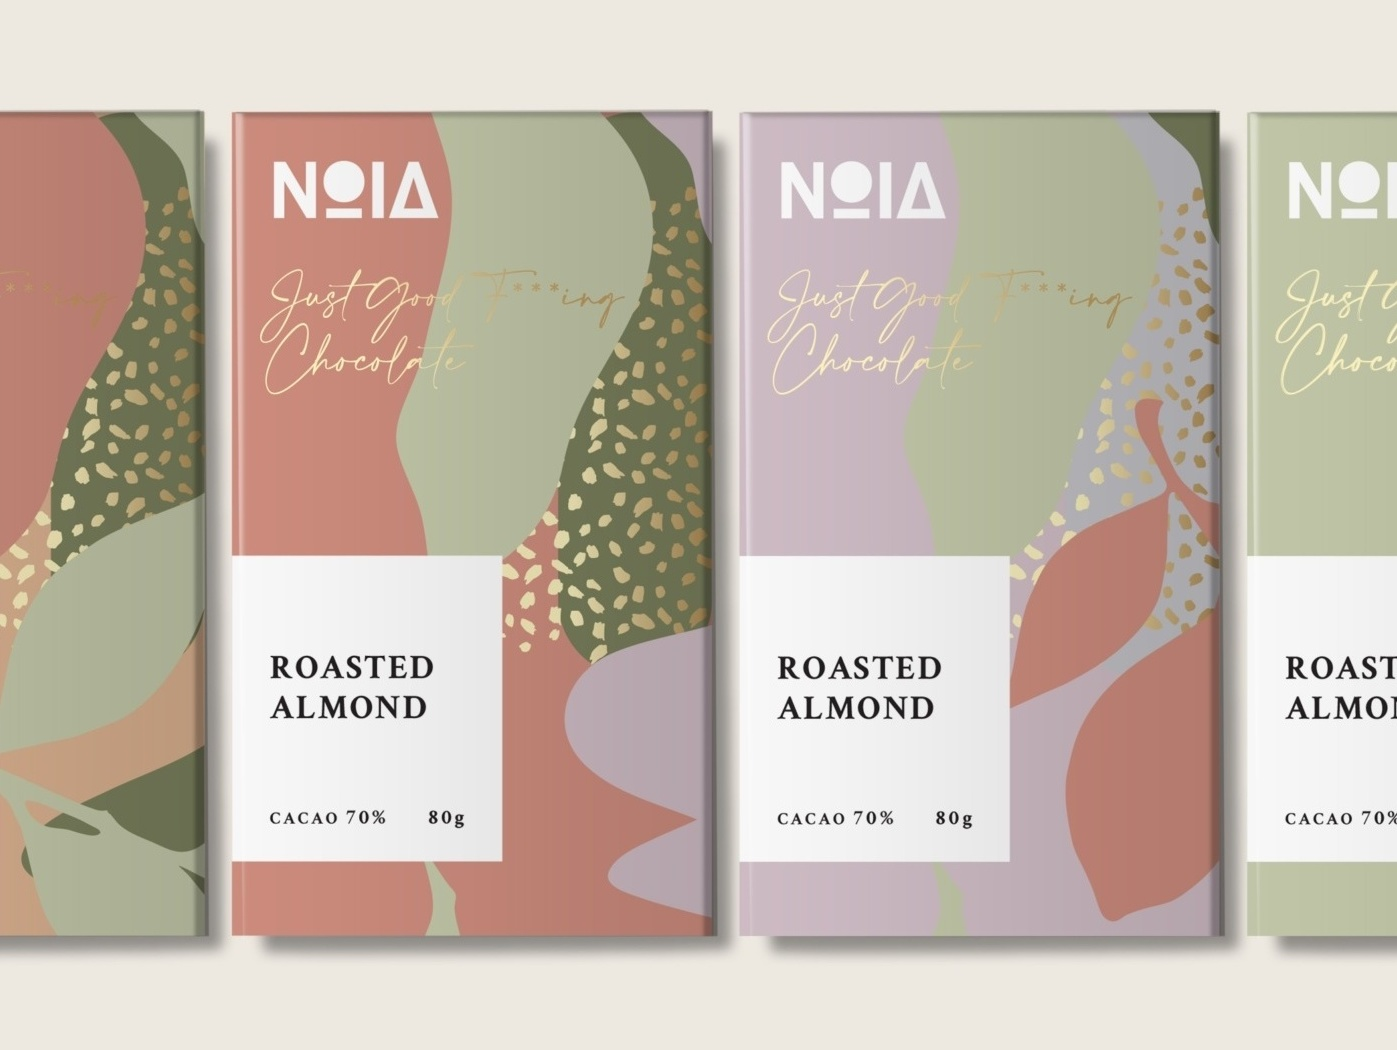 Abstract packaging design for chocolates with floral elements